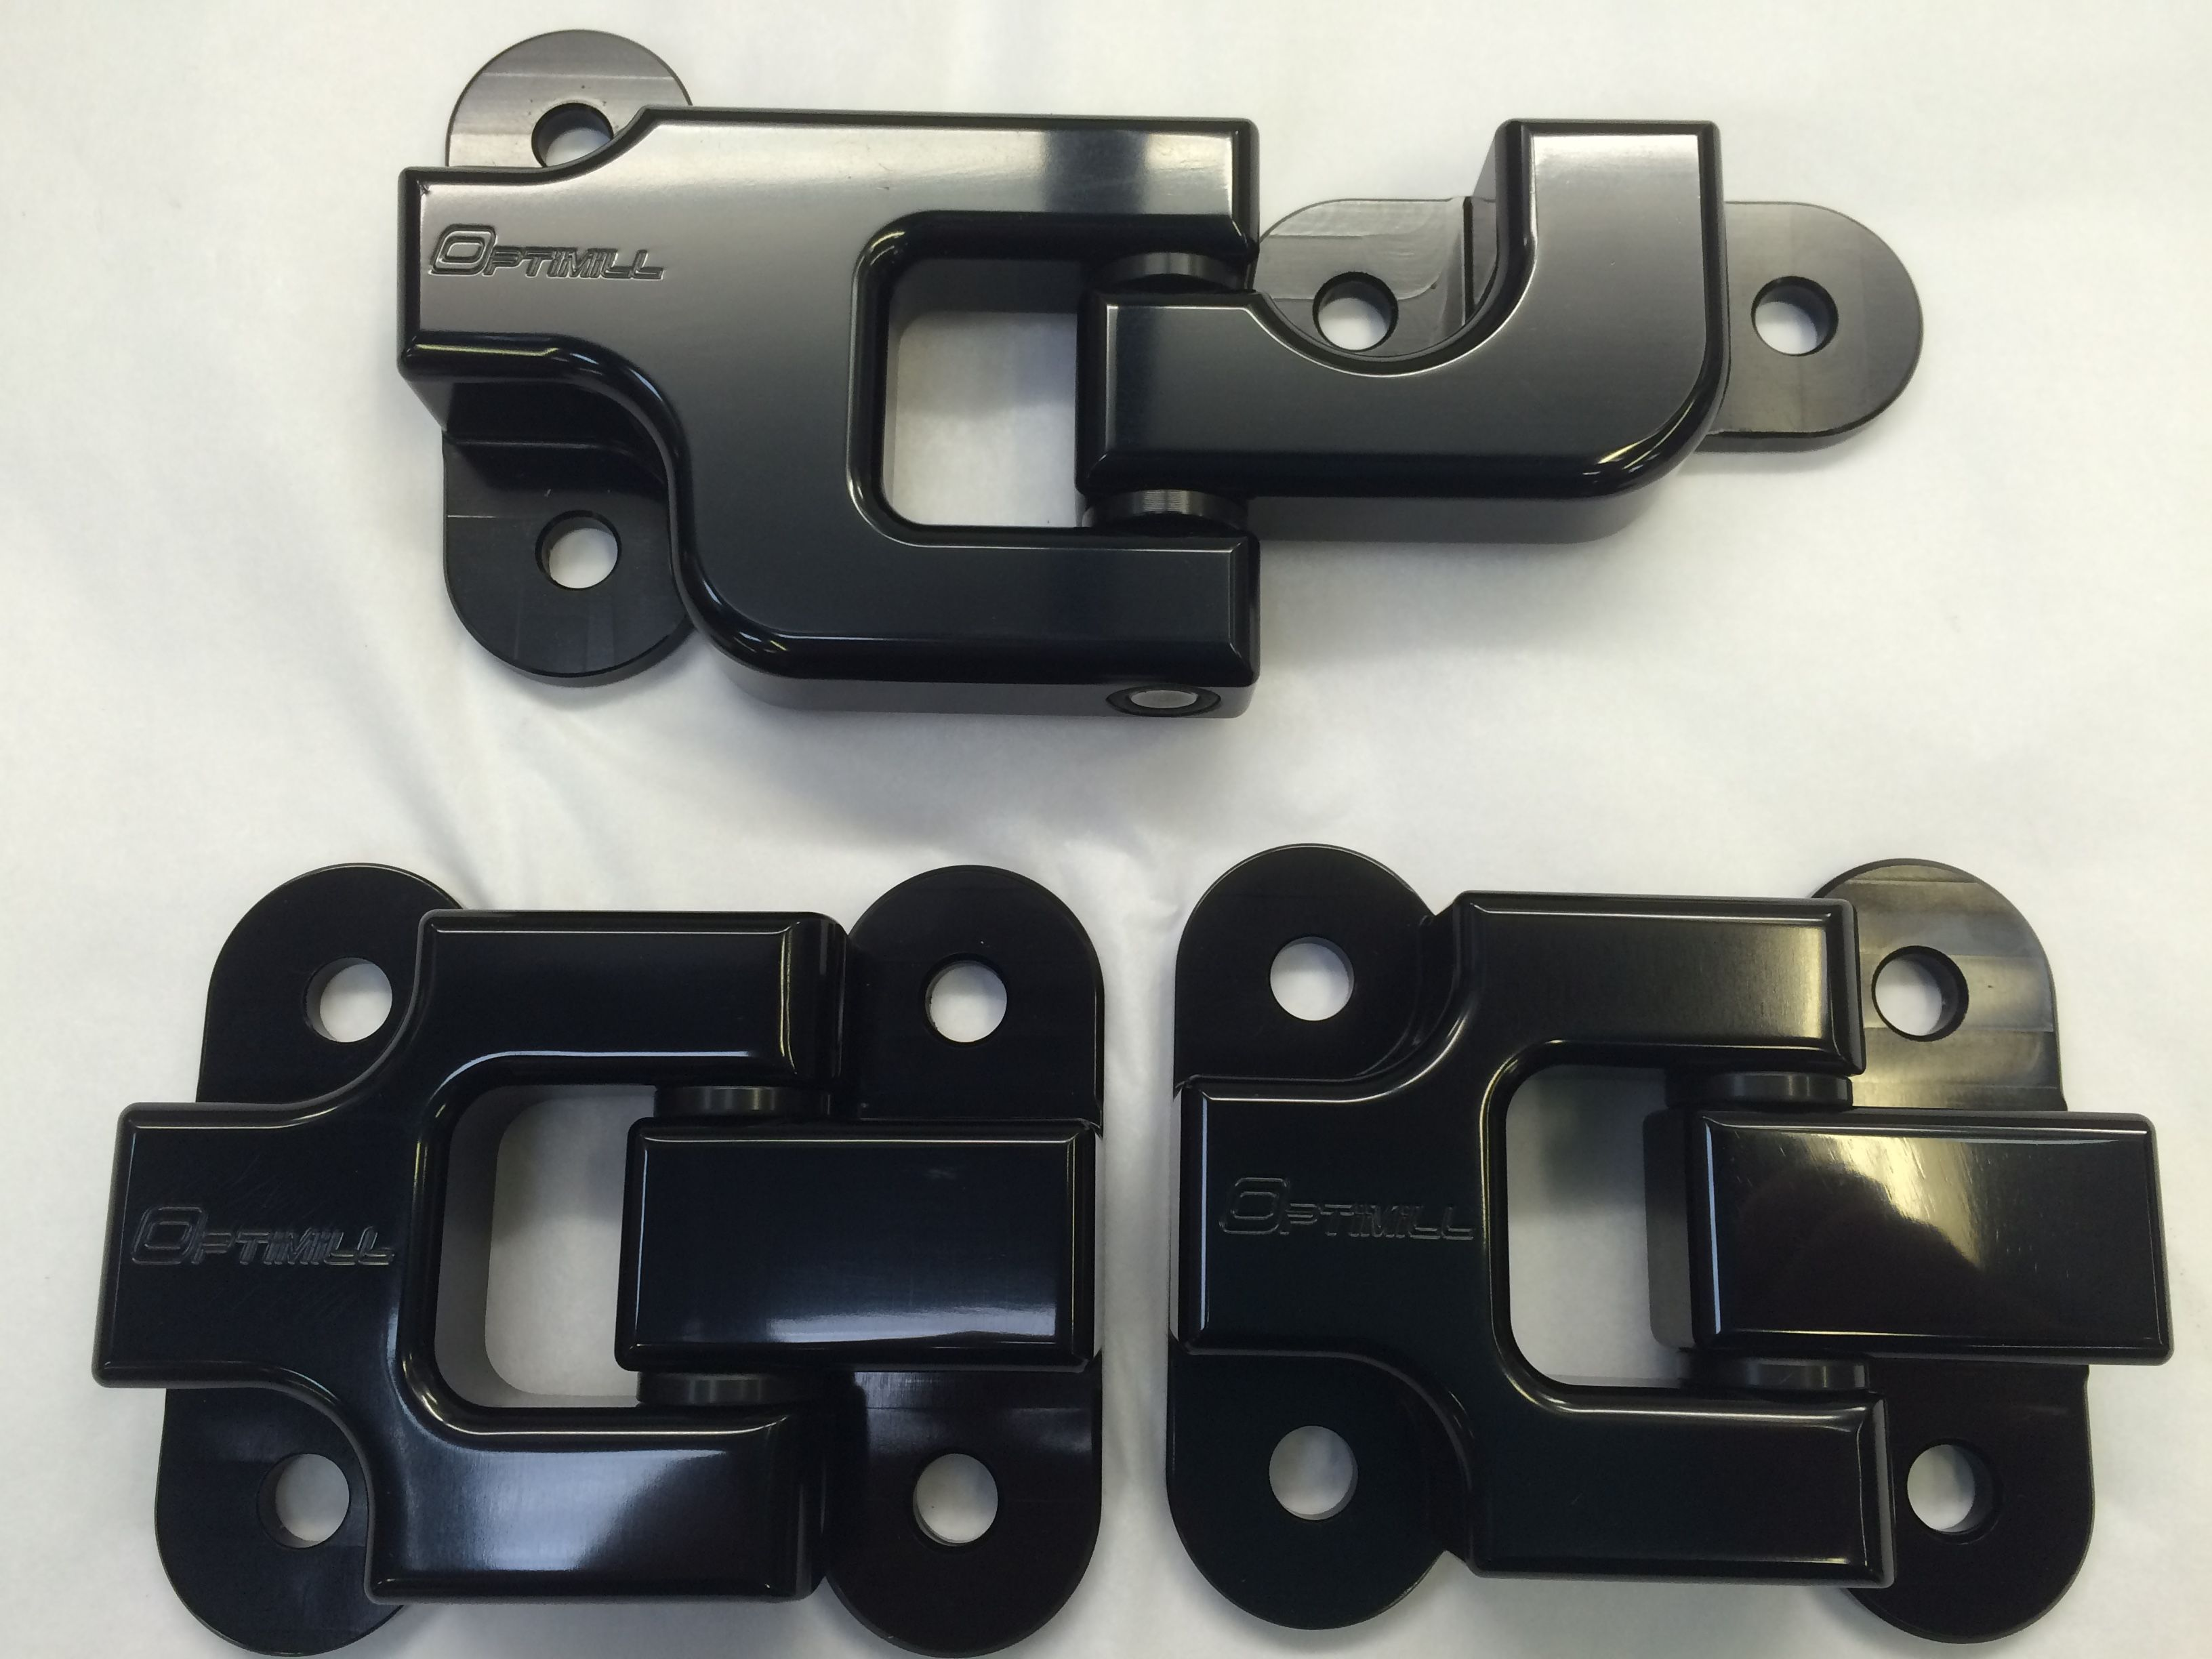 Landrover Defender Rear Door Hinges Set Of 3 In Black